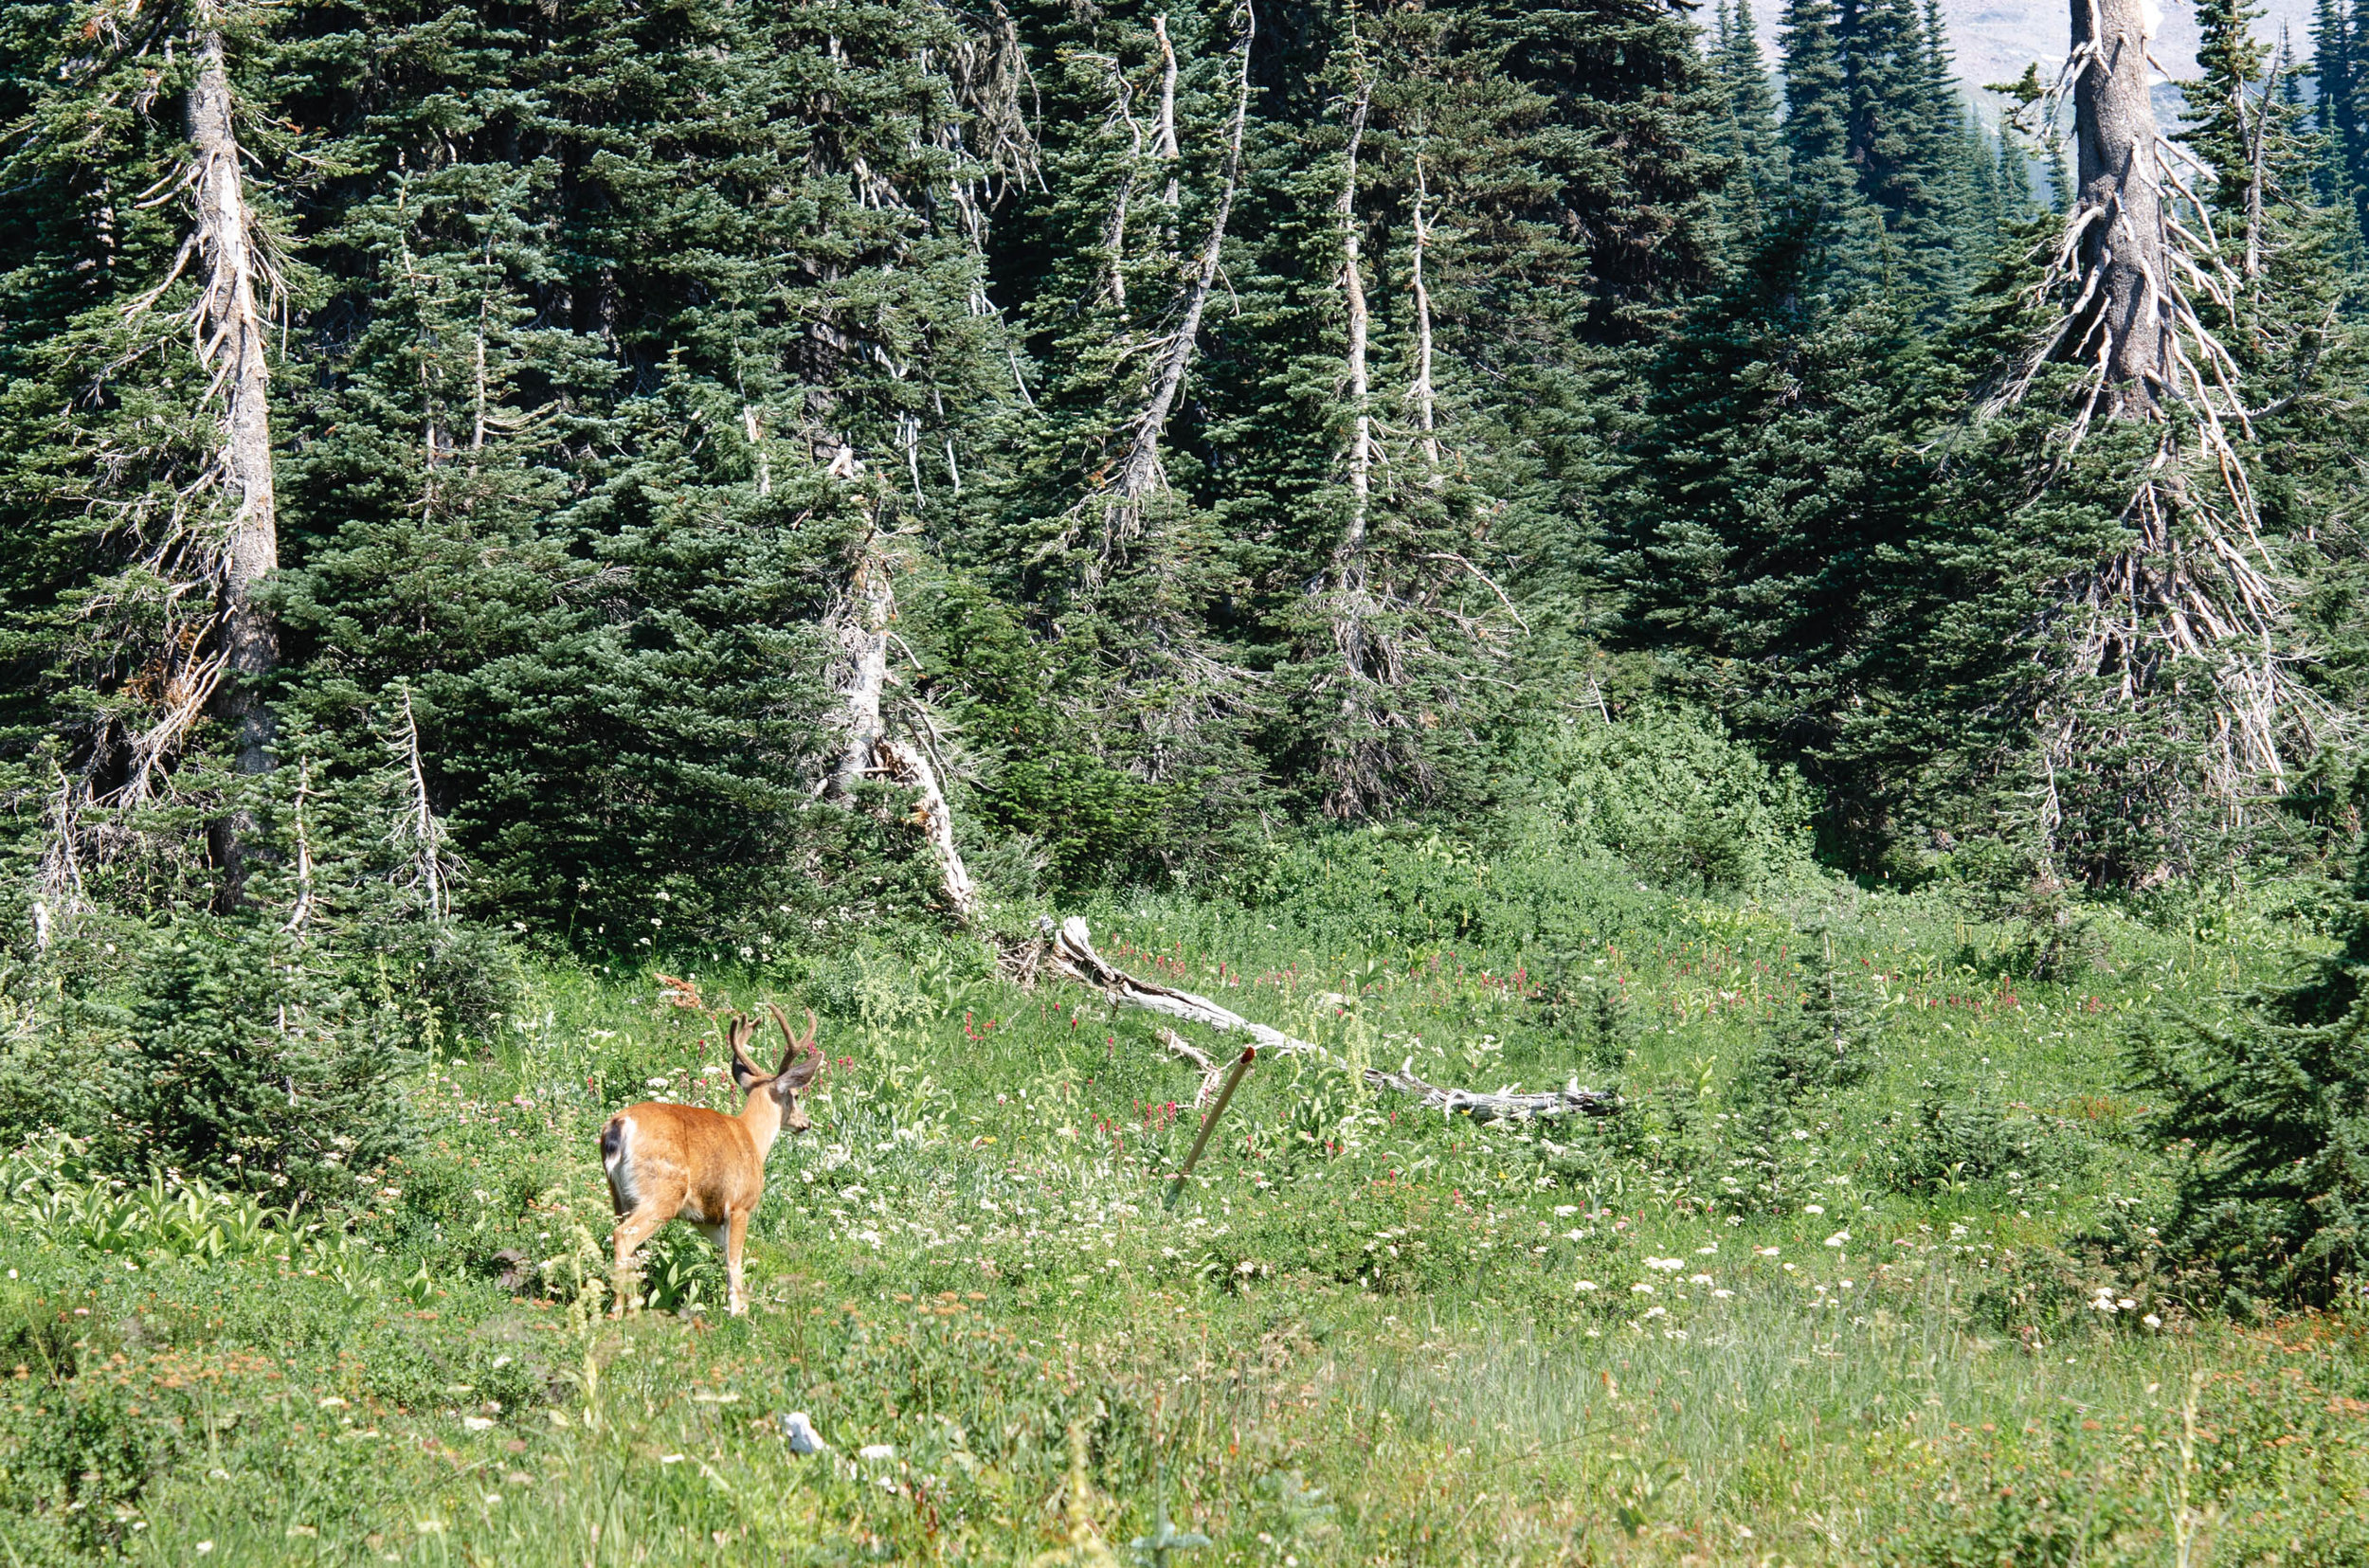 A deer walking around the meadows at Paradise, Mt. Rainier